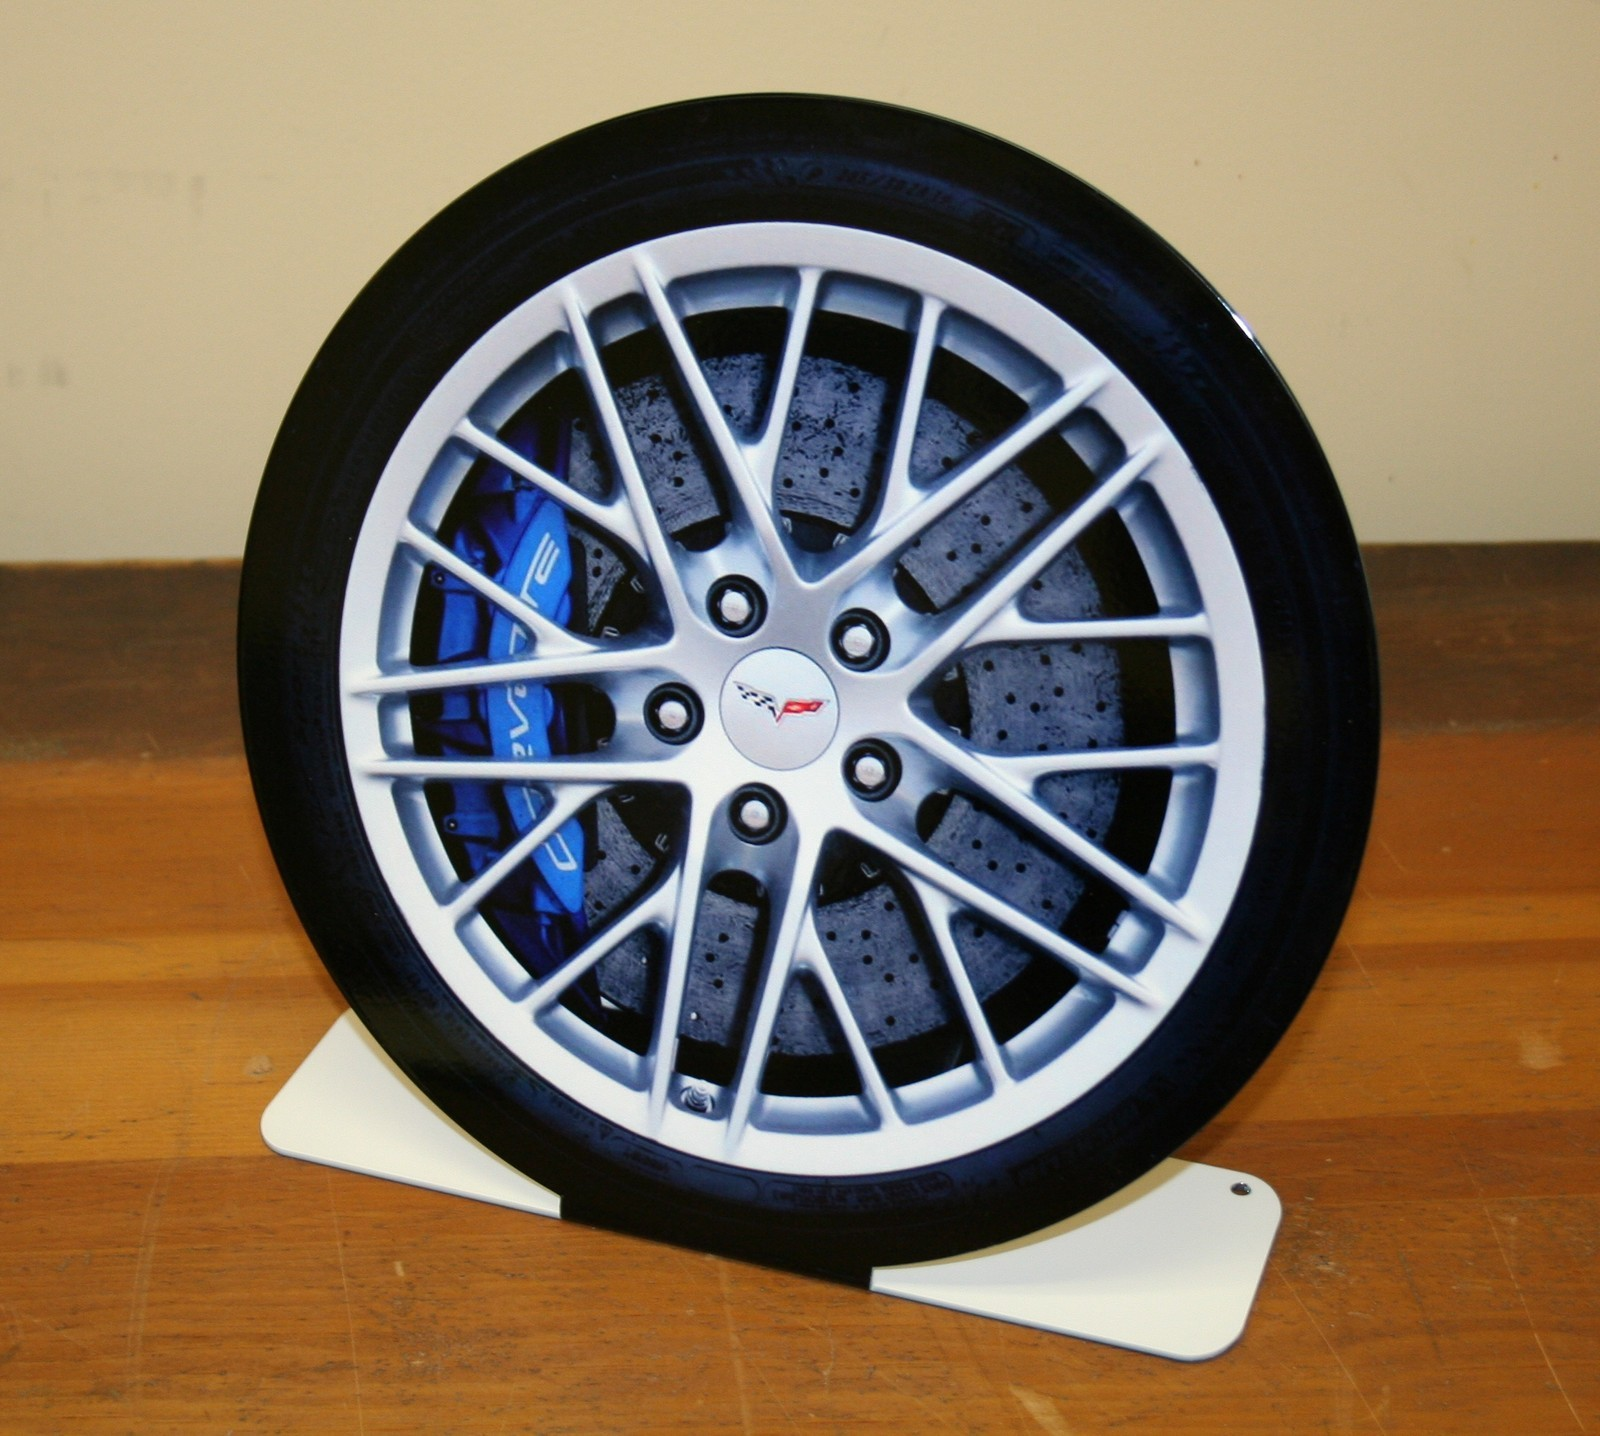 ZR 1 tire & rim free standing sign - Click Image to Close